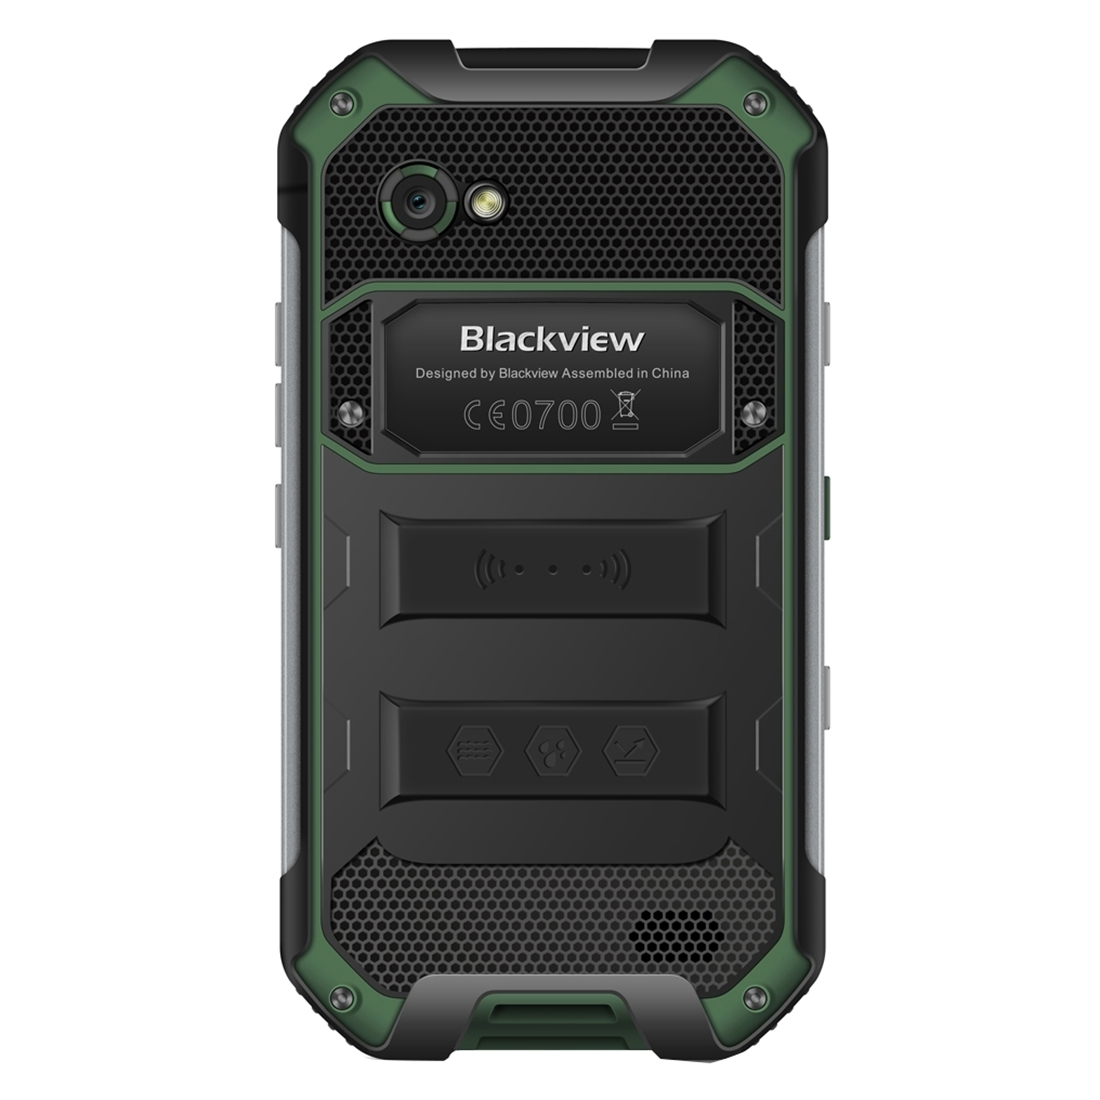 image for Blackview BV6000 Smartphone Android 6.0 ROM 32GB RAM 3GB IP68 Waterpro